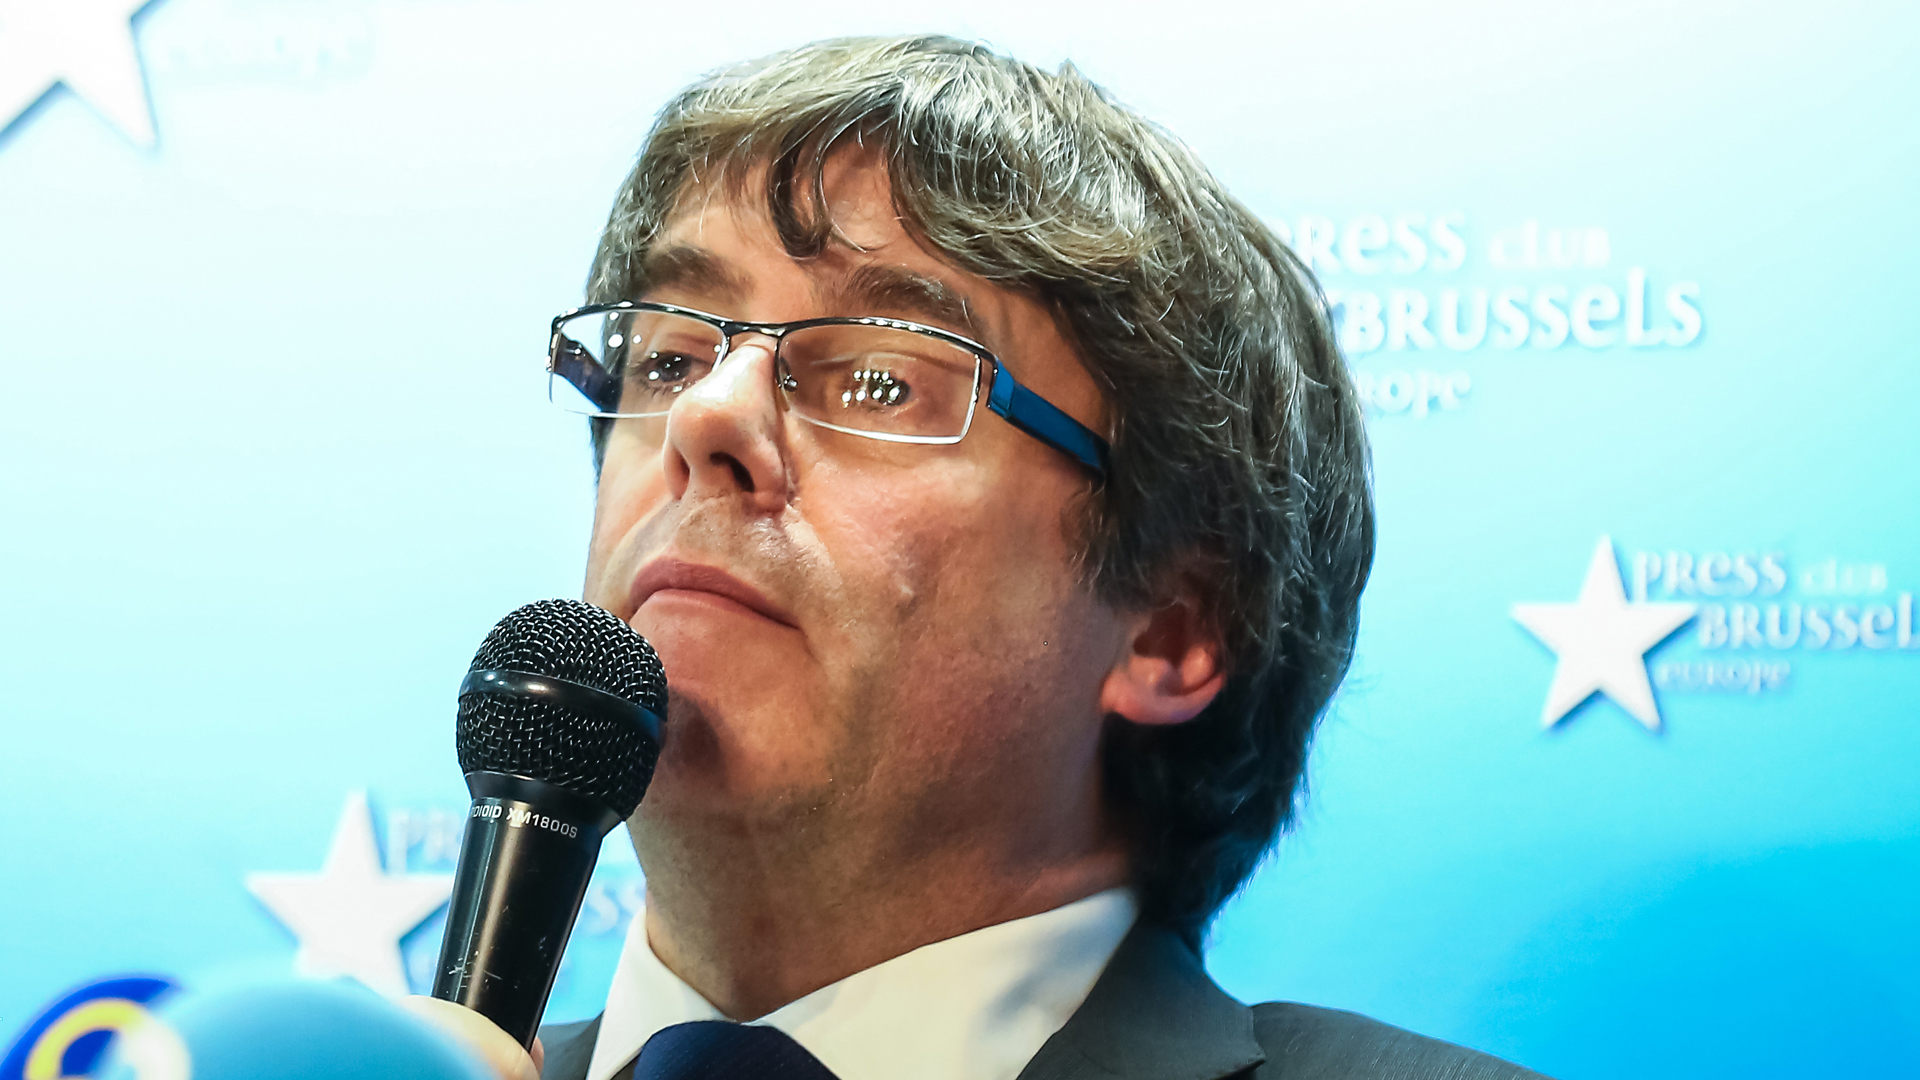 Catalonia's dismissed leader Carles Puigdemont, along with other members of his dismissed government, address a press conference at The Press Club in Brussels on Oct. 31, 2017. (Credit: Aurore Belot/AFP/Getty Images)